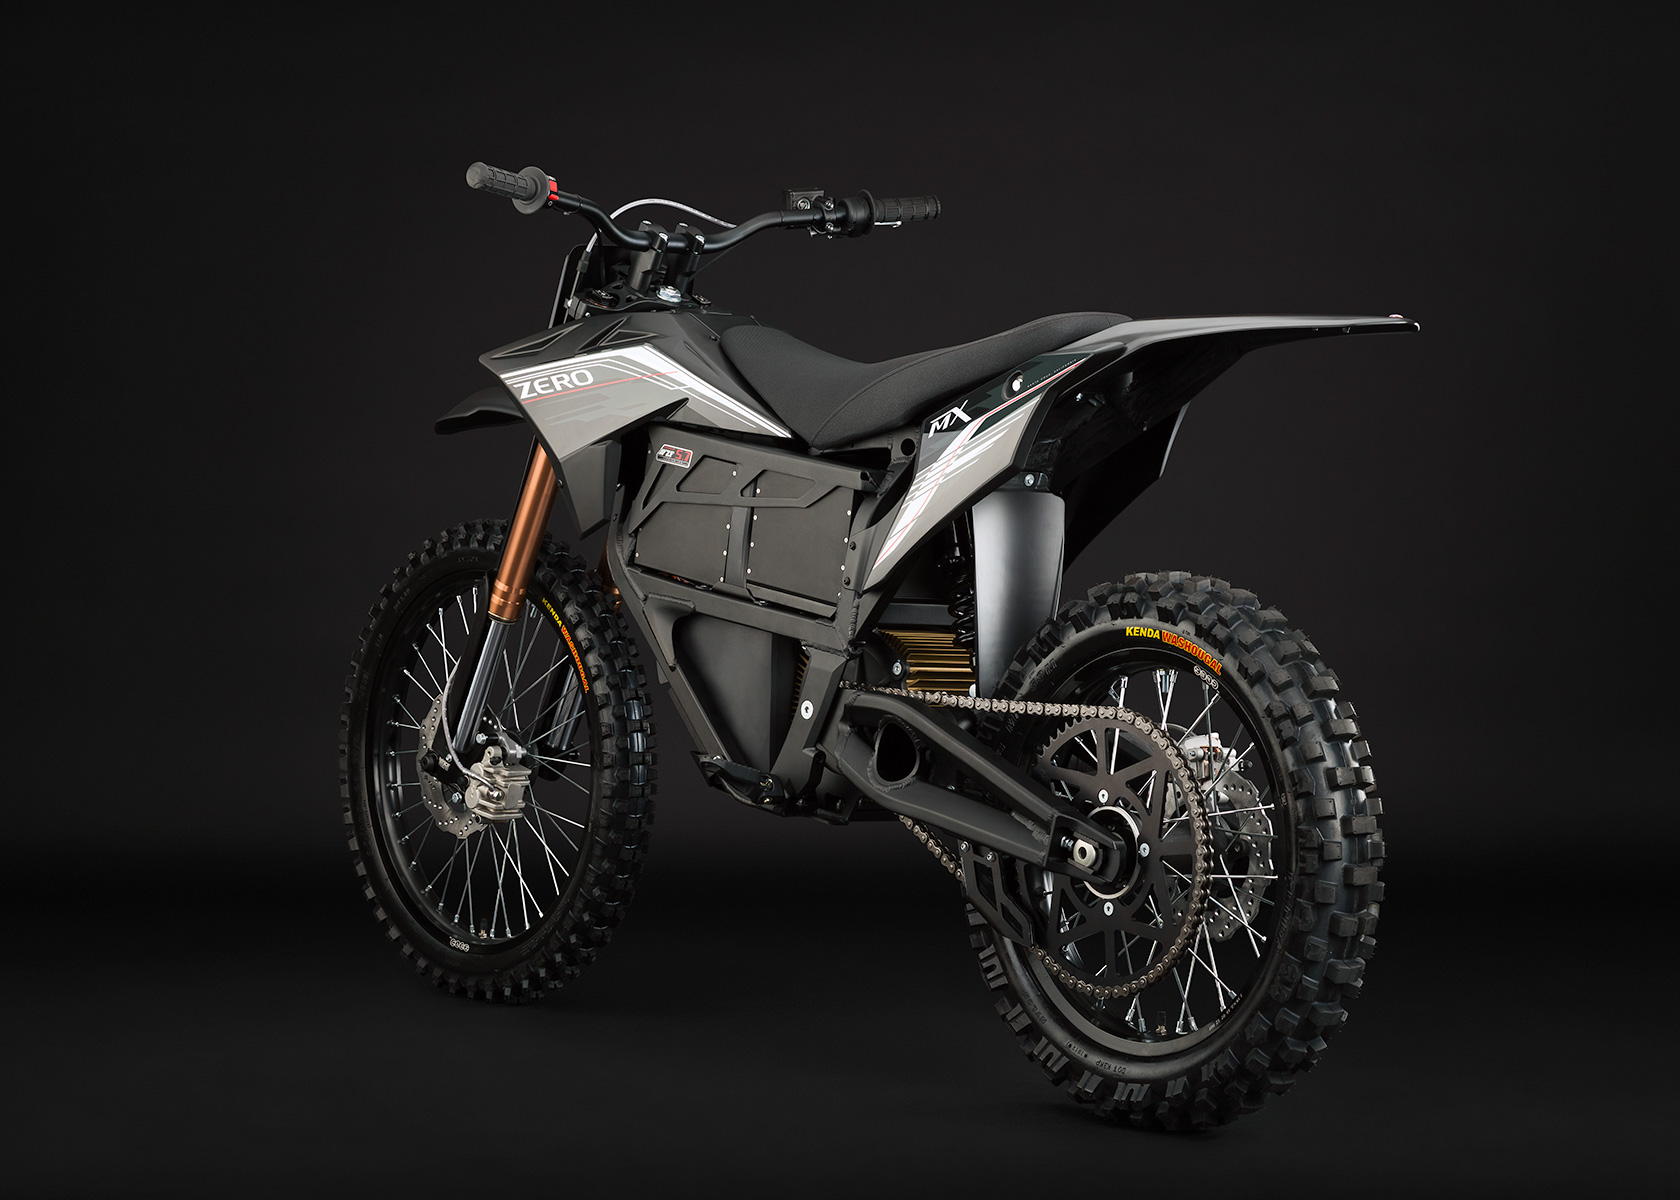 '.2013 Zero MX Electric Motorcycle: Black Angle Left.'